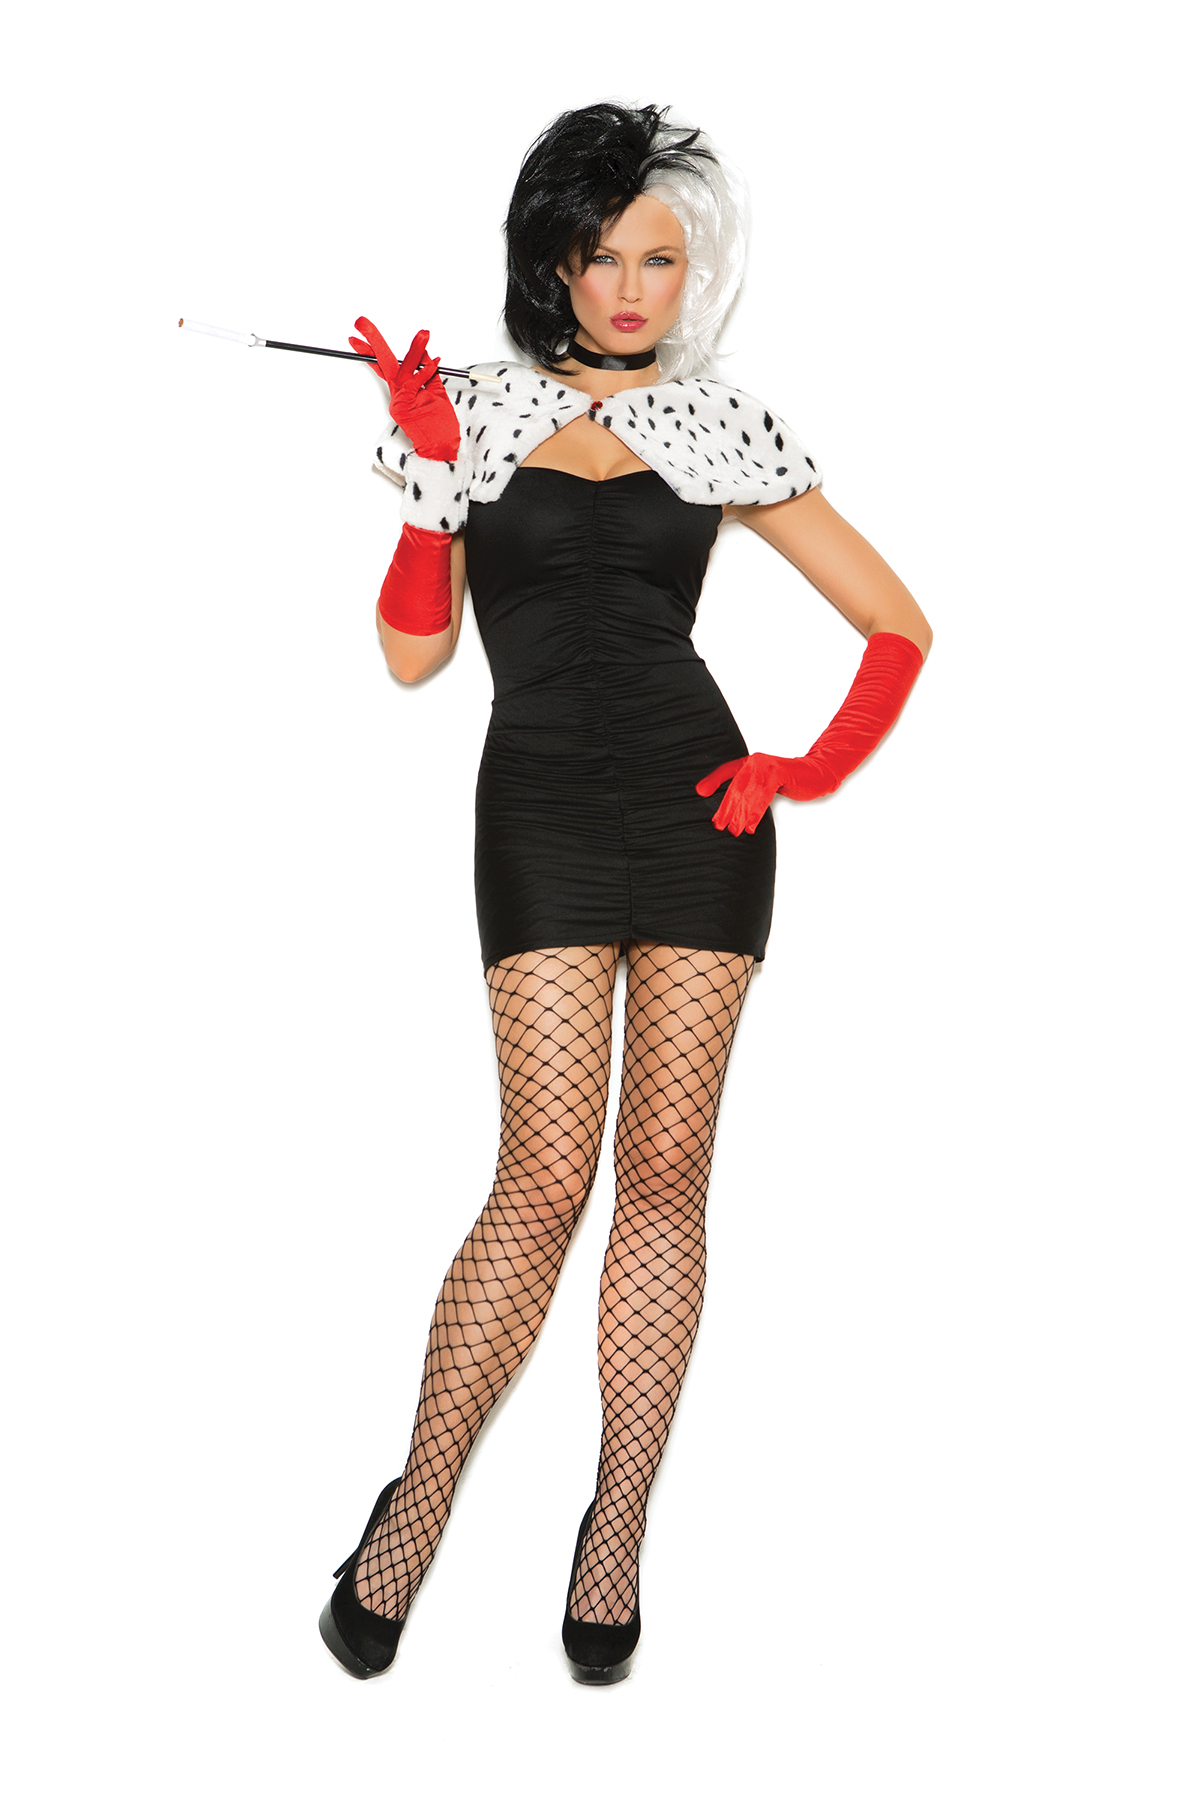 Halloween costume ideas to inspire you this october